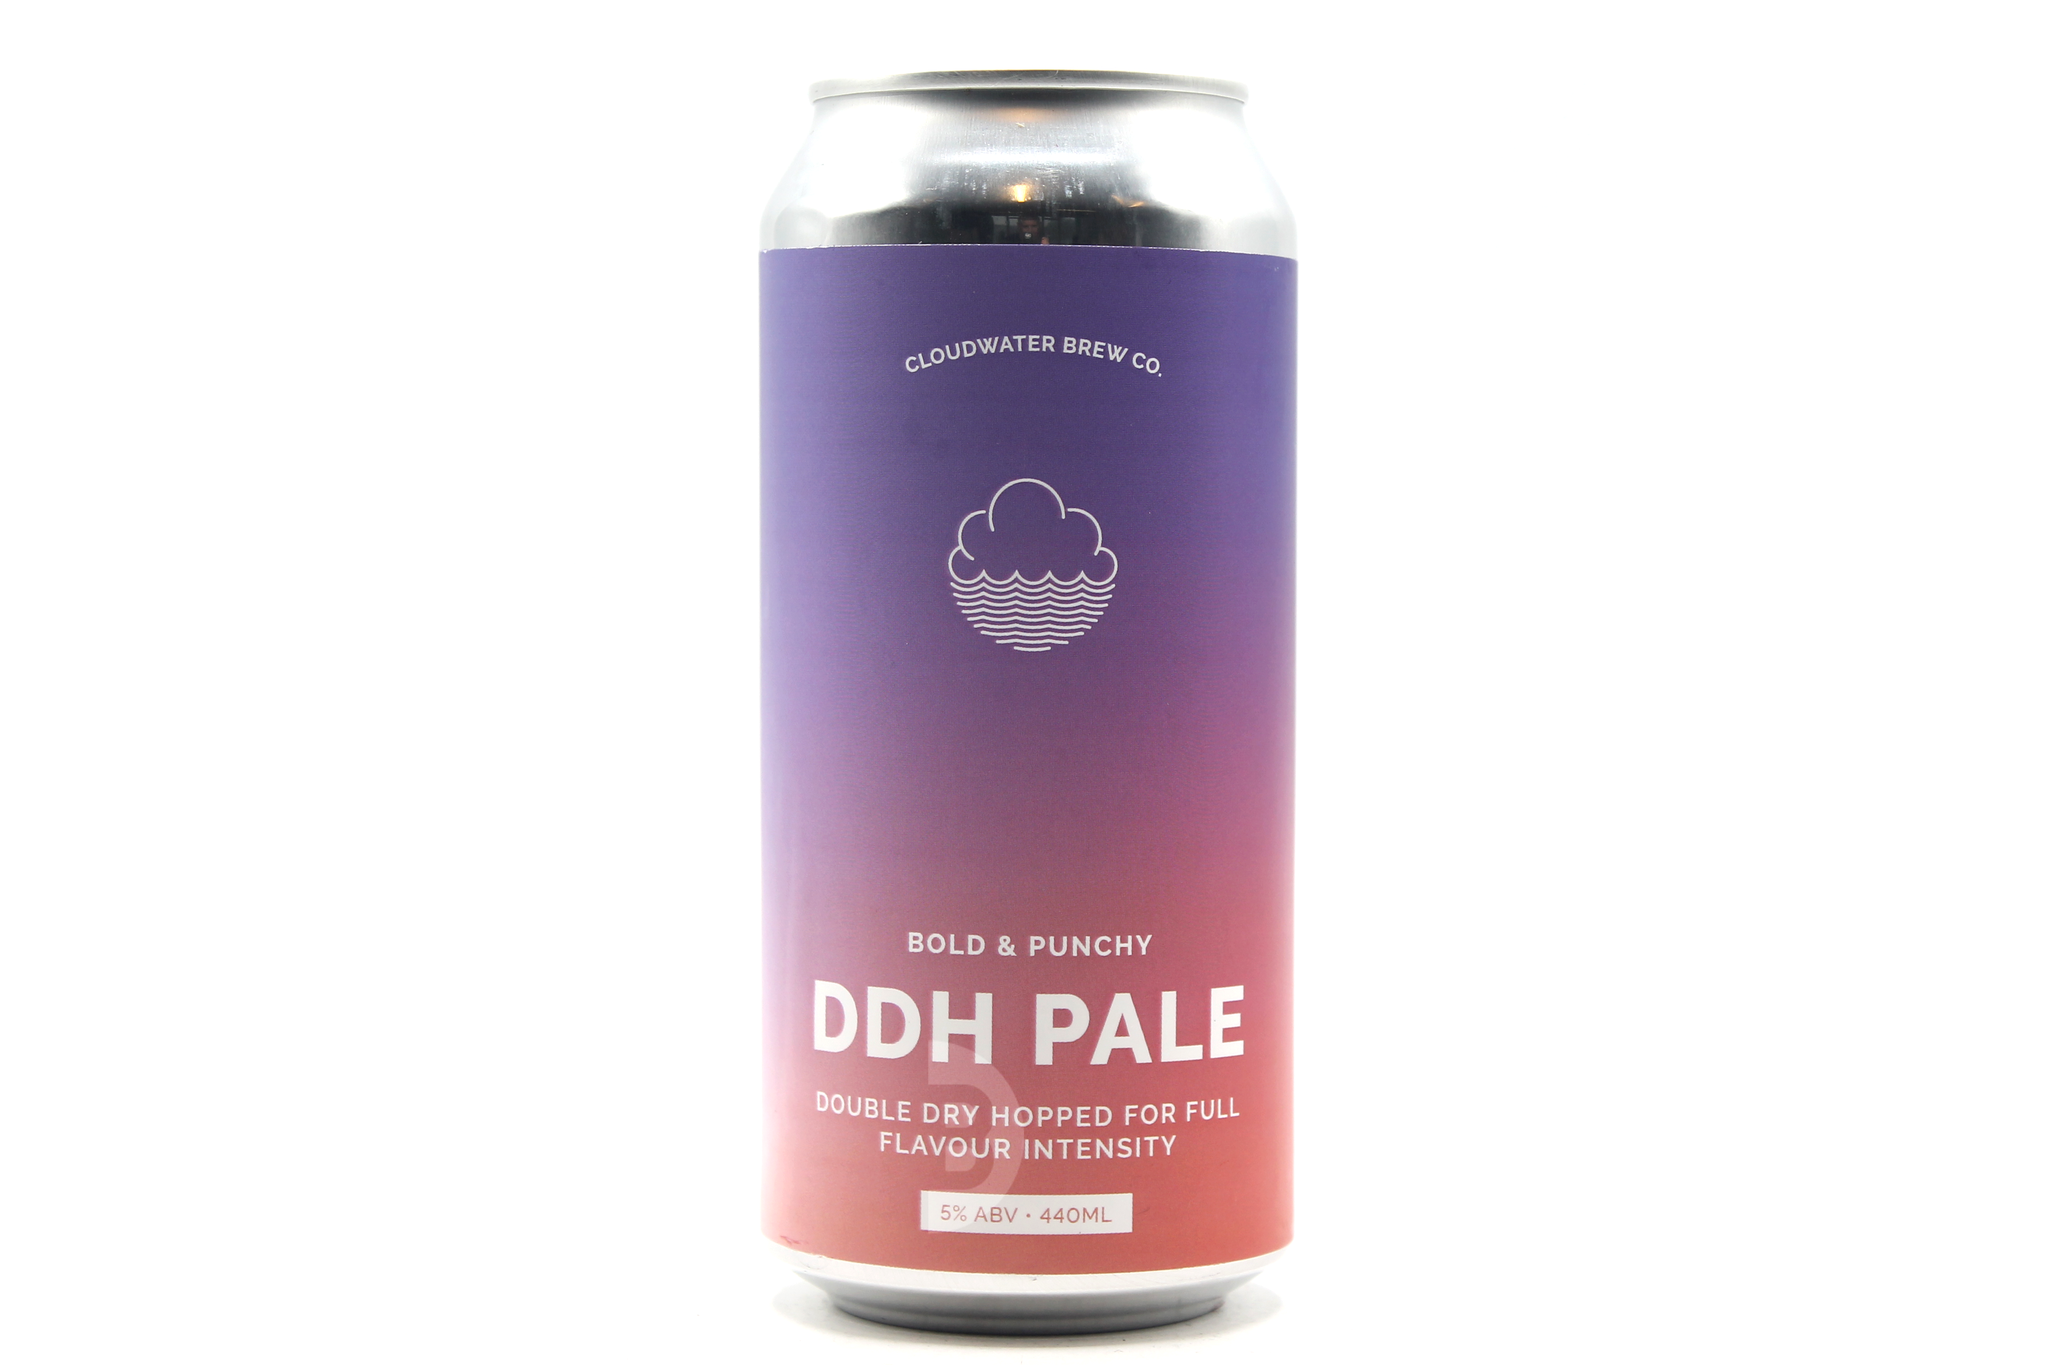 Cloudwater DDH Pale 5% (440ml)